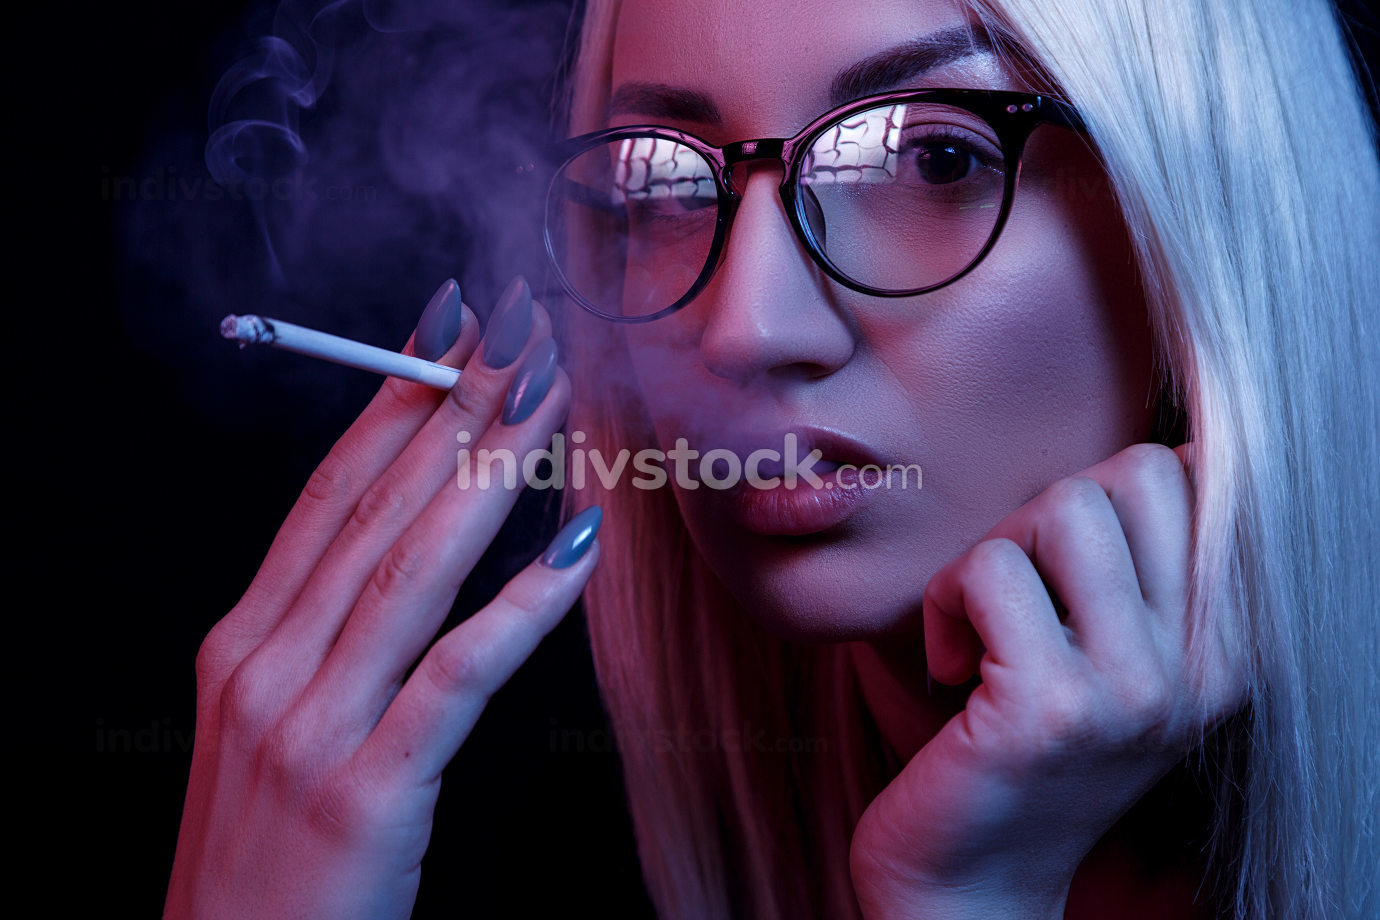 young Caucasian beautiful blonde woman with glasses Smoking. close-up portrait in neon light